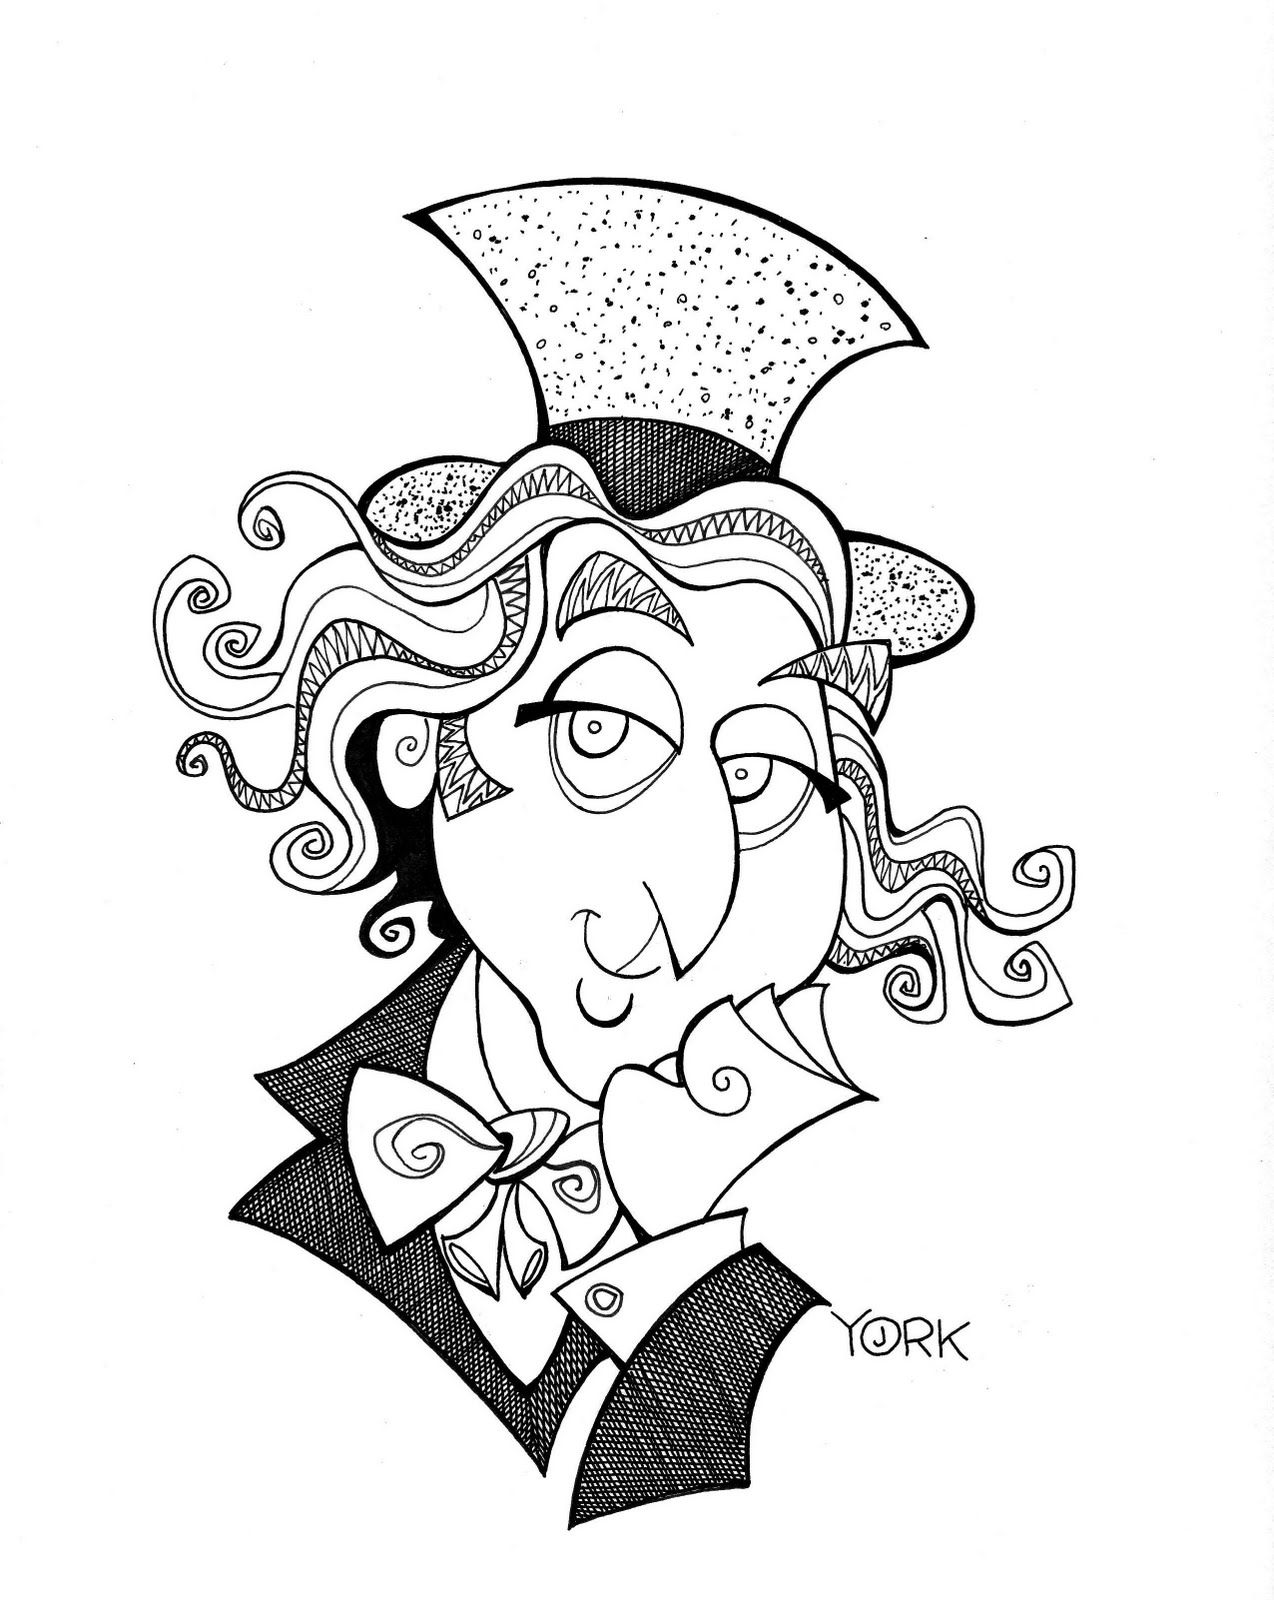 willy wonka and the chocolate factory coloring pages willy wonka kleurplaat gouden wikkel kleurplaat wonka coloring the and chocolate factory pages willy